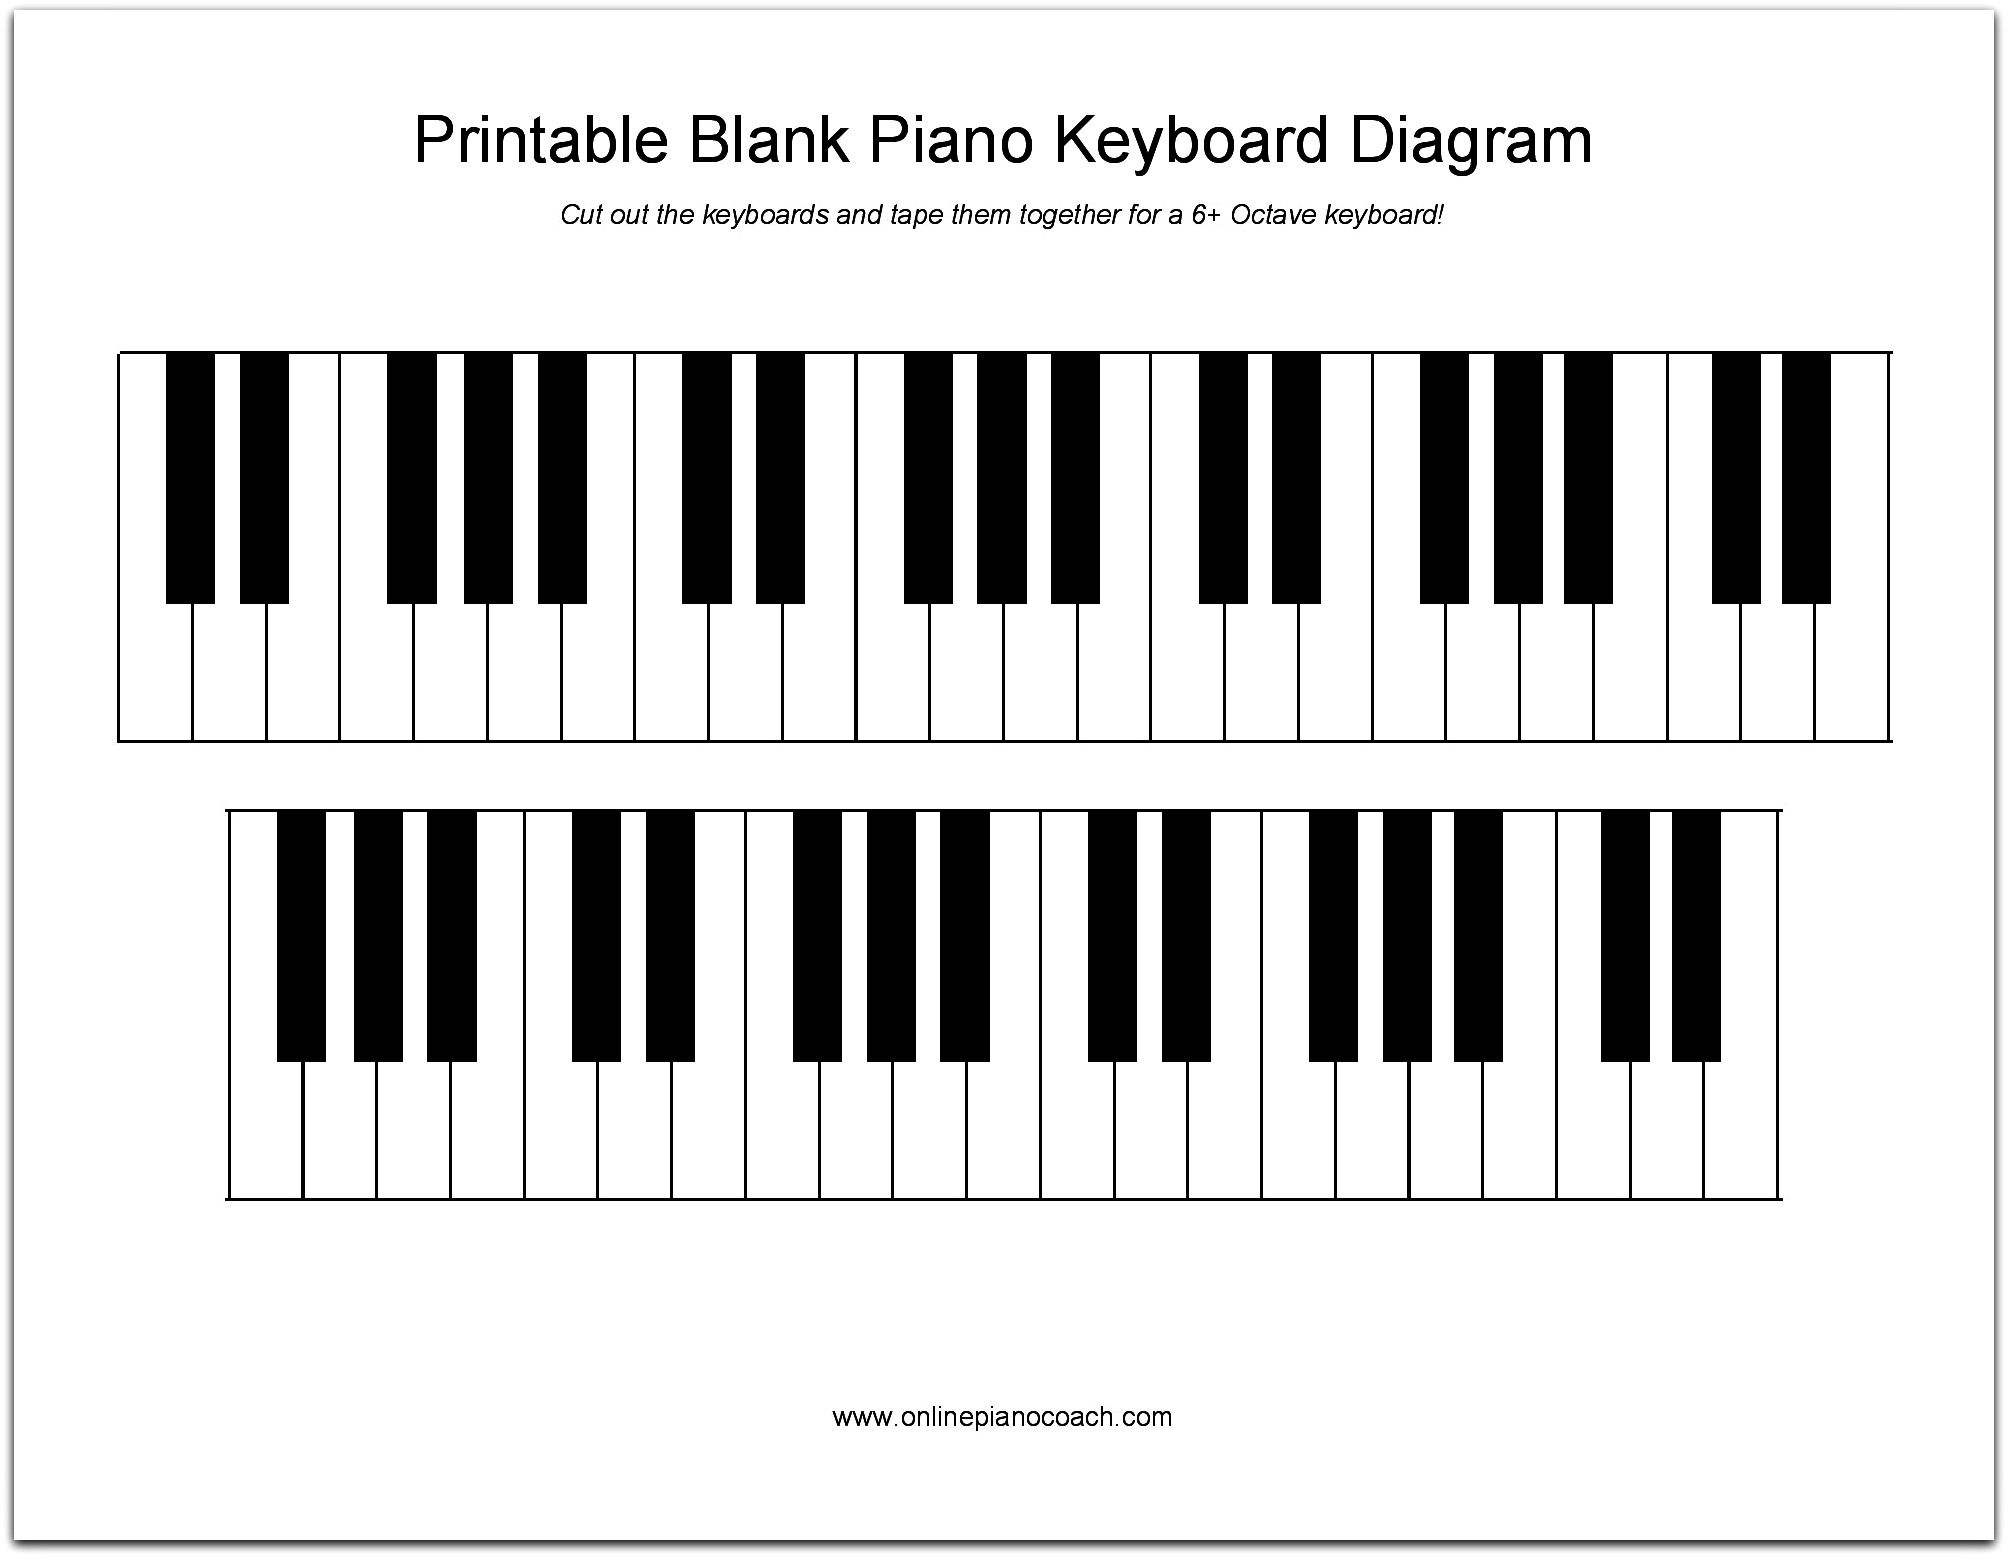 keyboardmand diagram